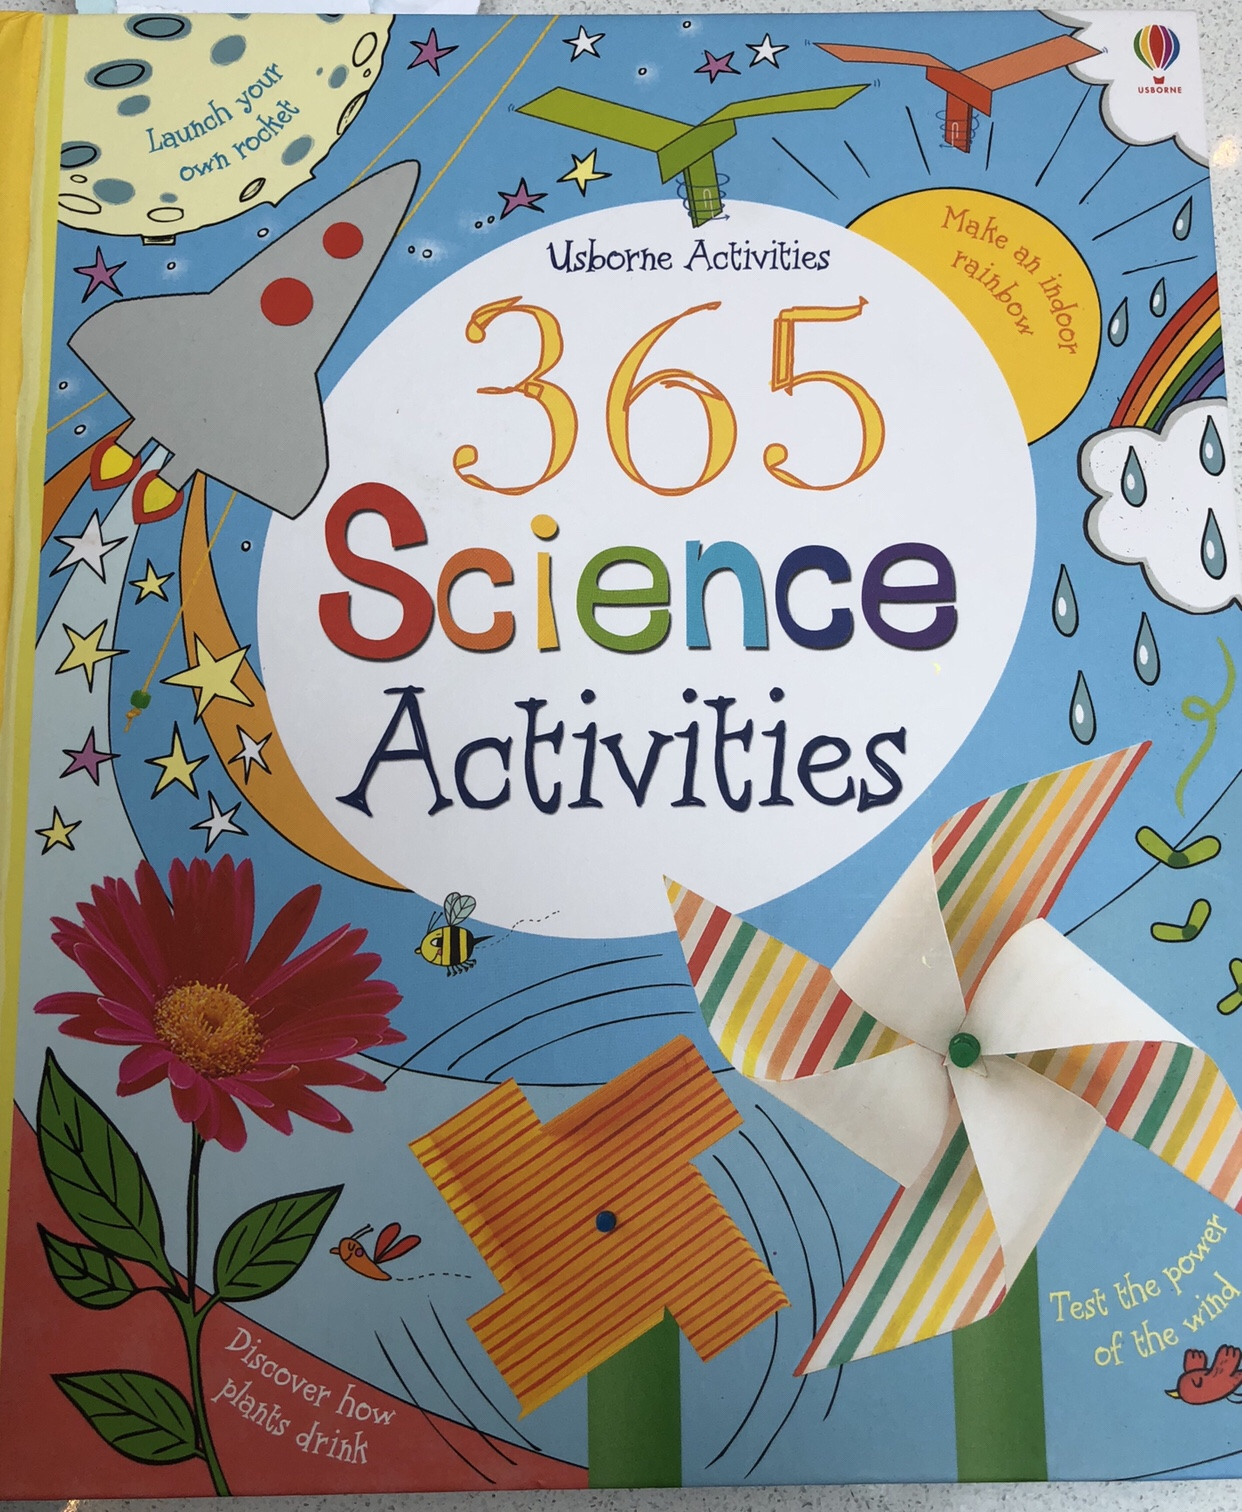 The Usborne 365 Science activity book that I got a lot of my Science Birthday Party ideas from.